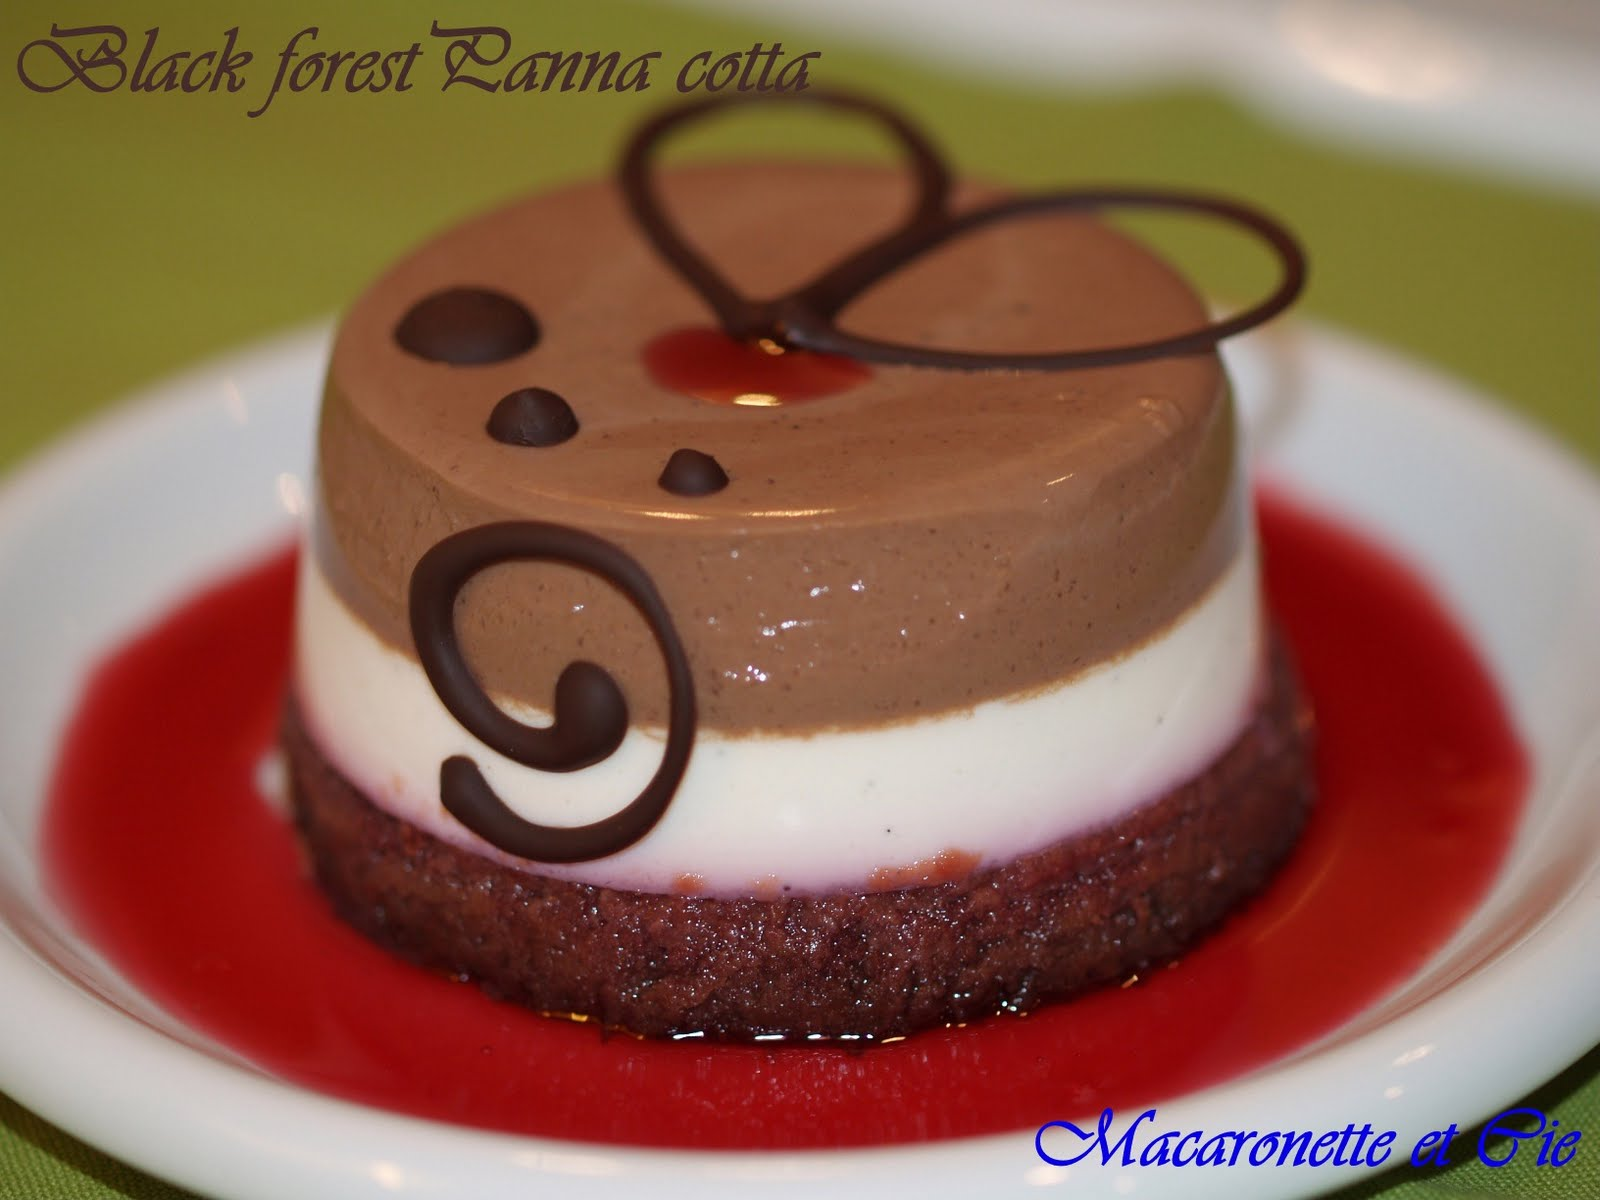 Macaronette et Cie (the English Version): Black forest panna cotta